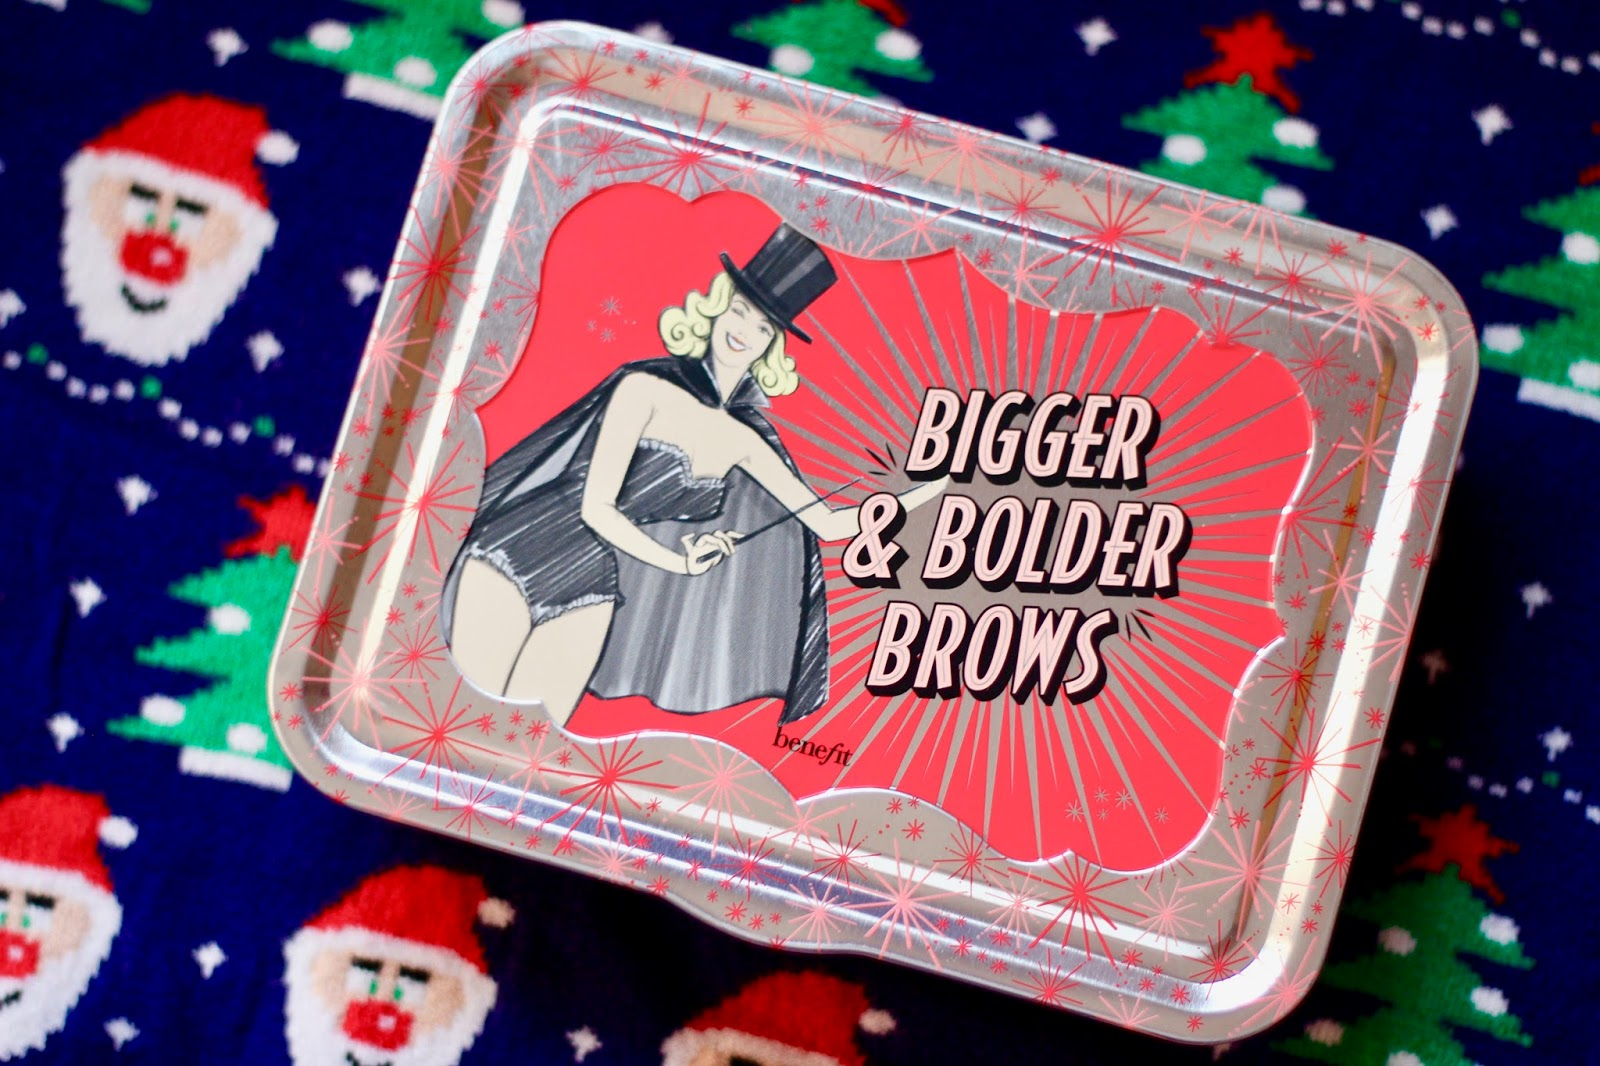 Benefit Bigger & Bolder Brows Gift Set Ka-Brow! High-Brow Ready, Set, Brow!